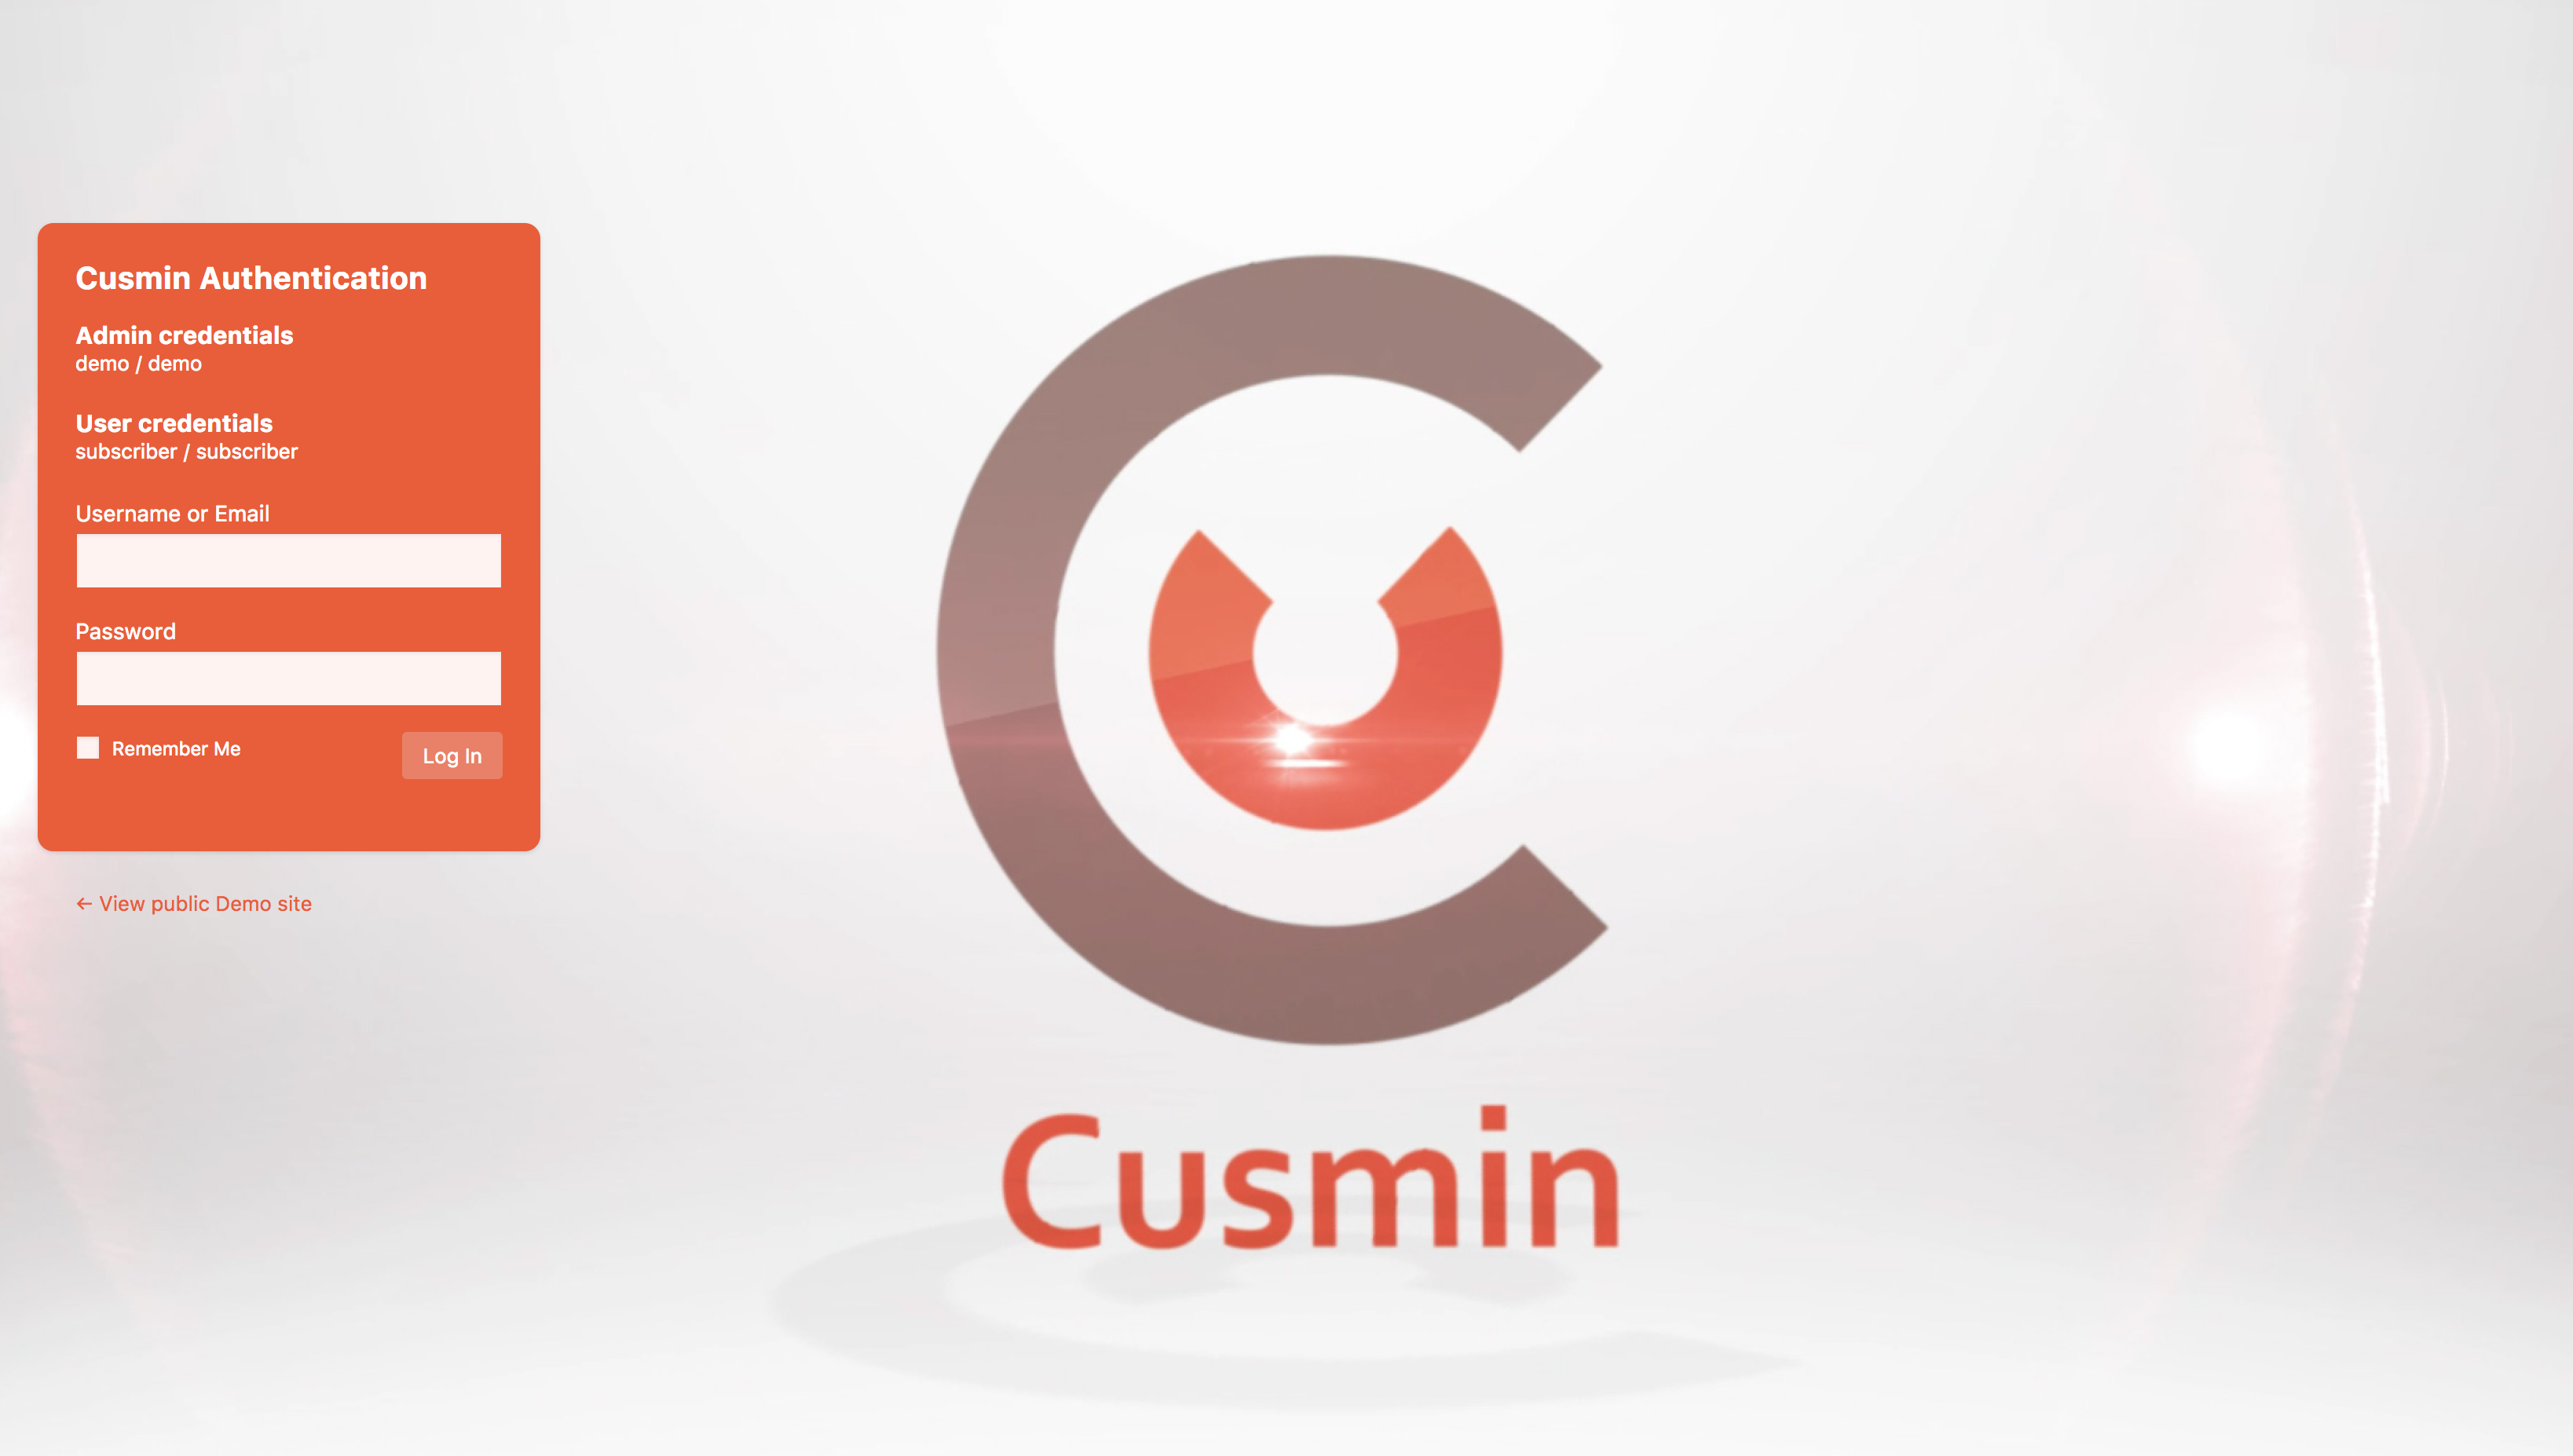 Changed login form position to the left with Cusmin